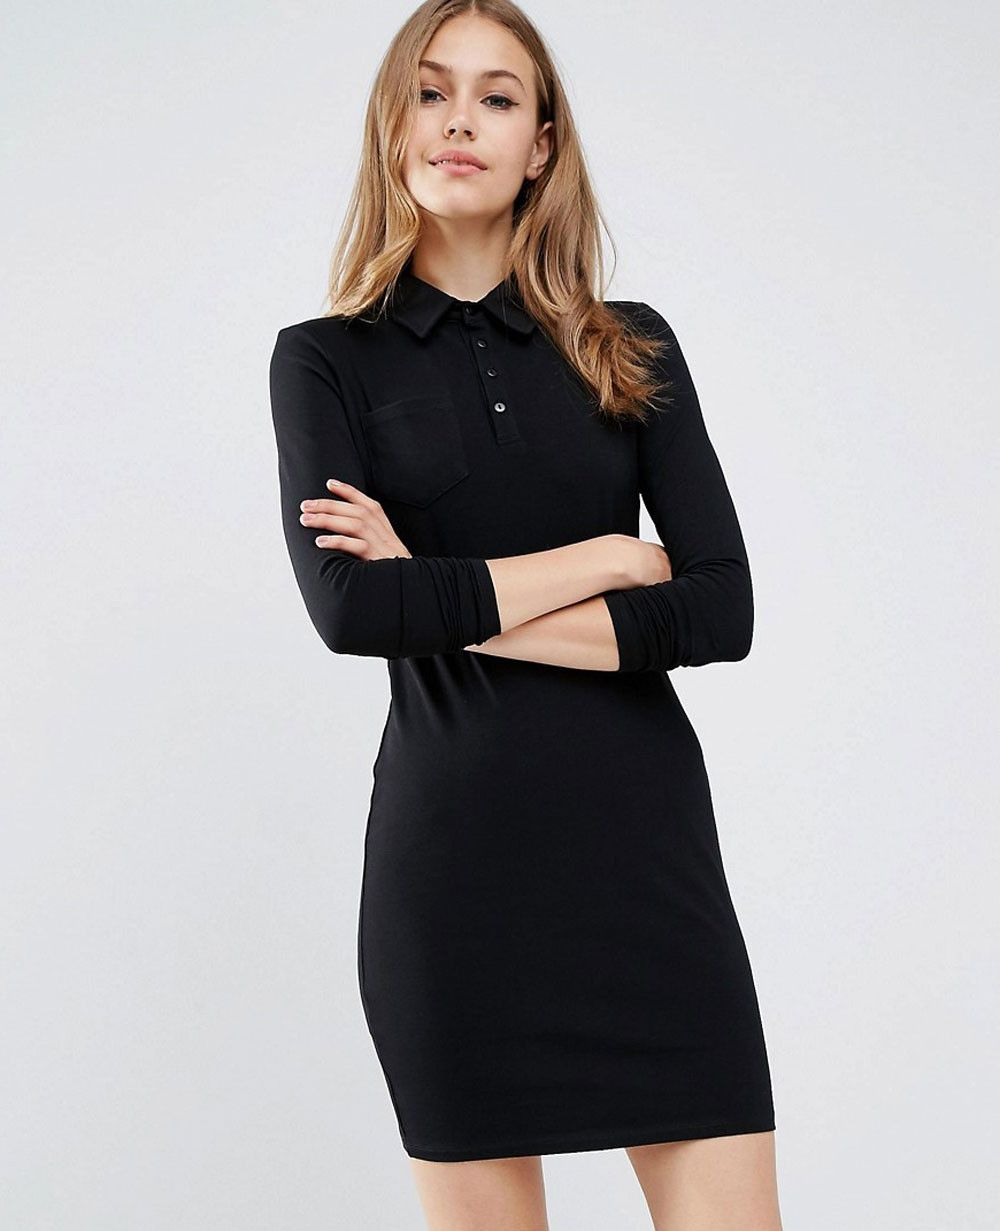 76c3becb201 Long Sleeve Shirt Dress Shopstyle